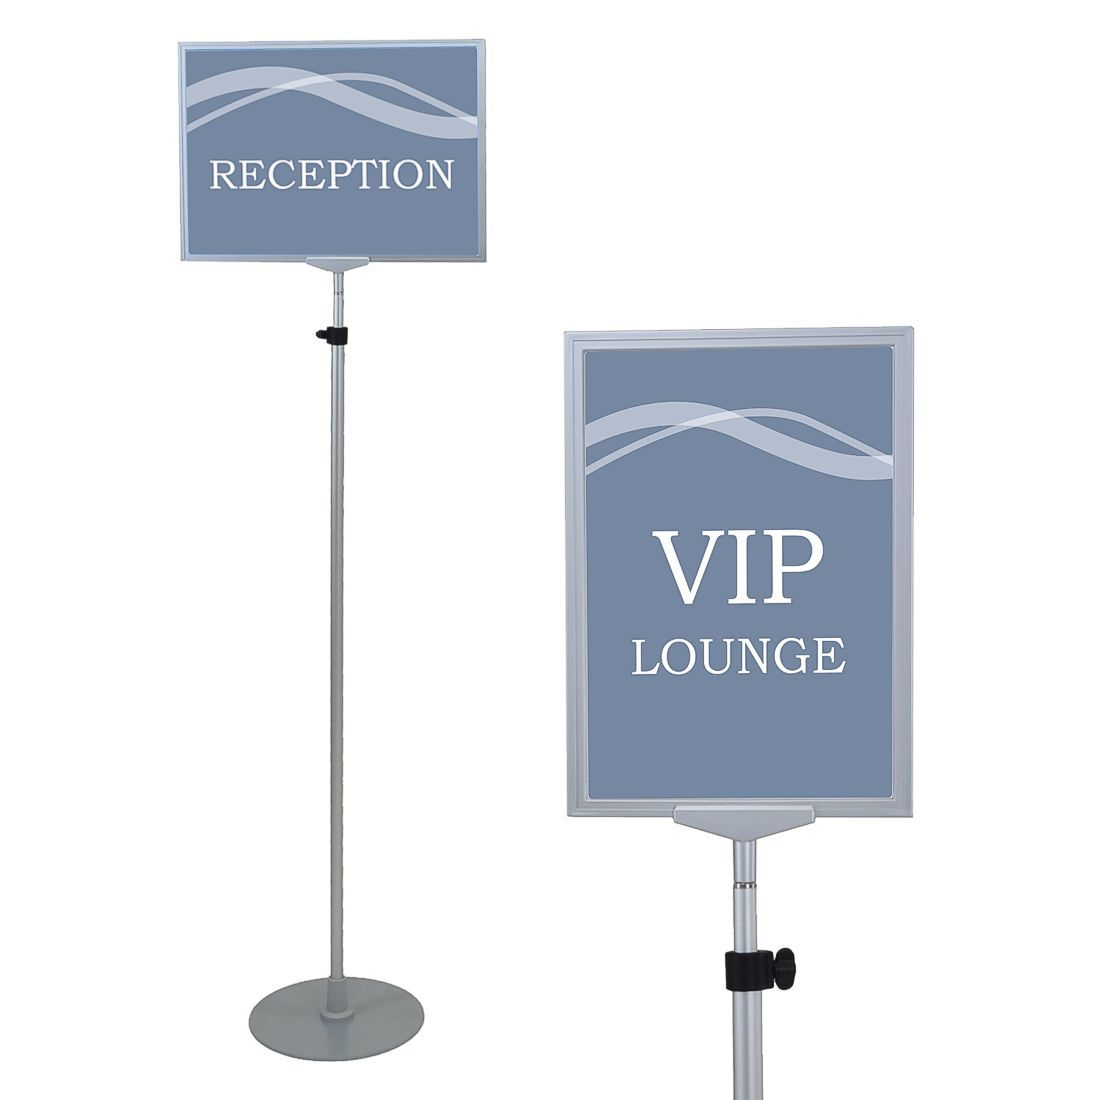 A3 Adjustable Pedestal Sign Holder Floor Stands Rack Black Acrylic Frames Advertising Banner Photo Menu Literature Display Frame Office & School Supplies